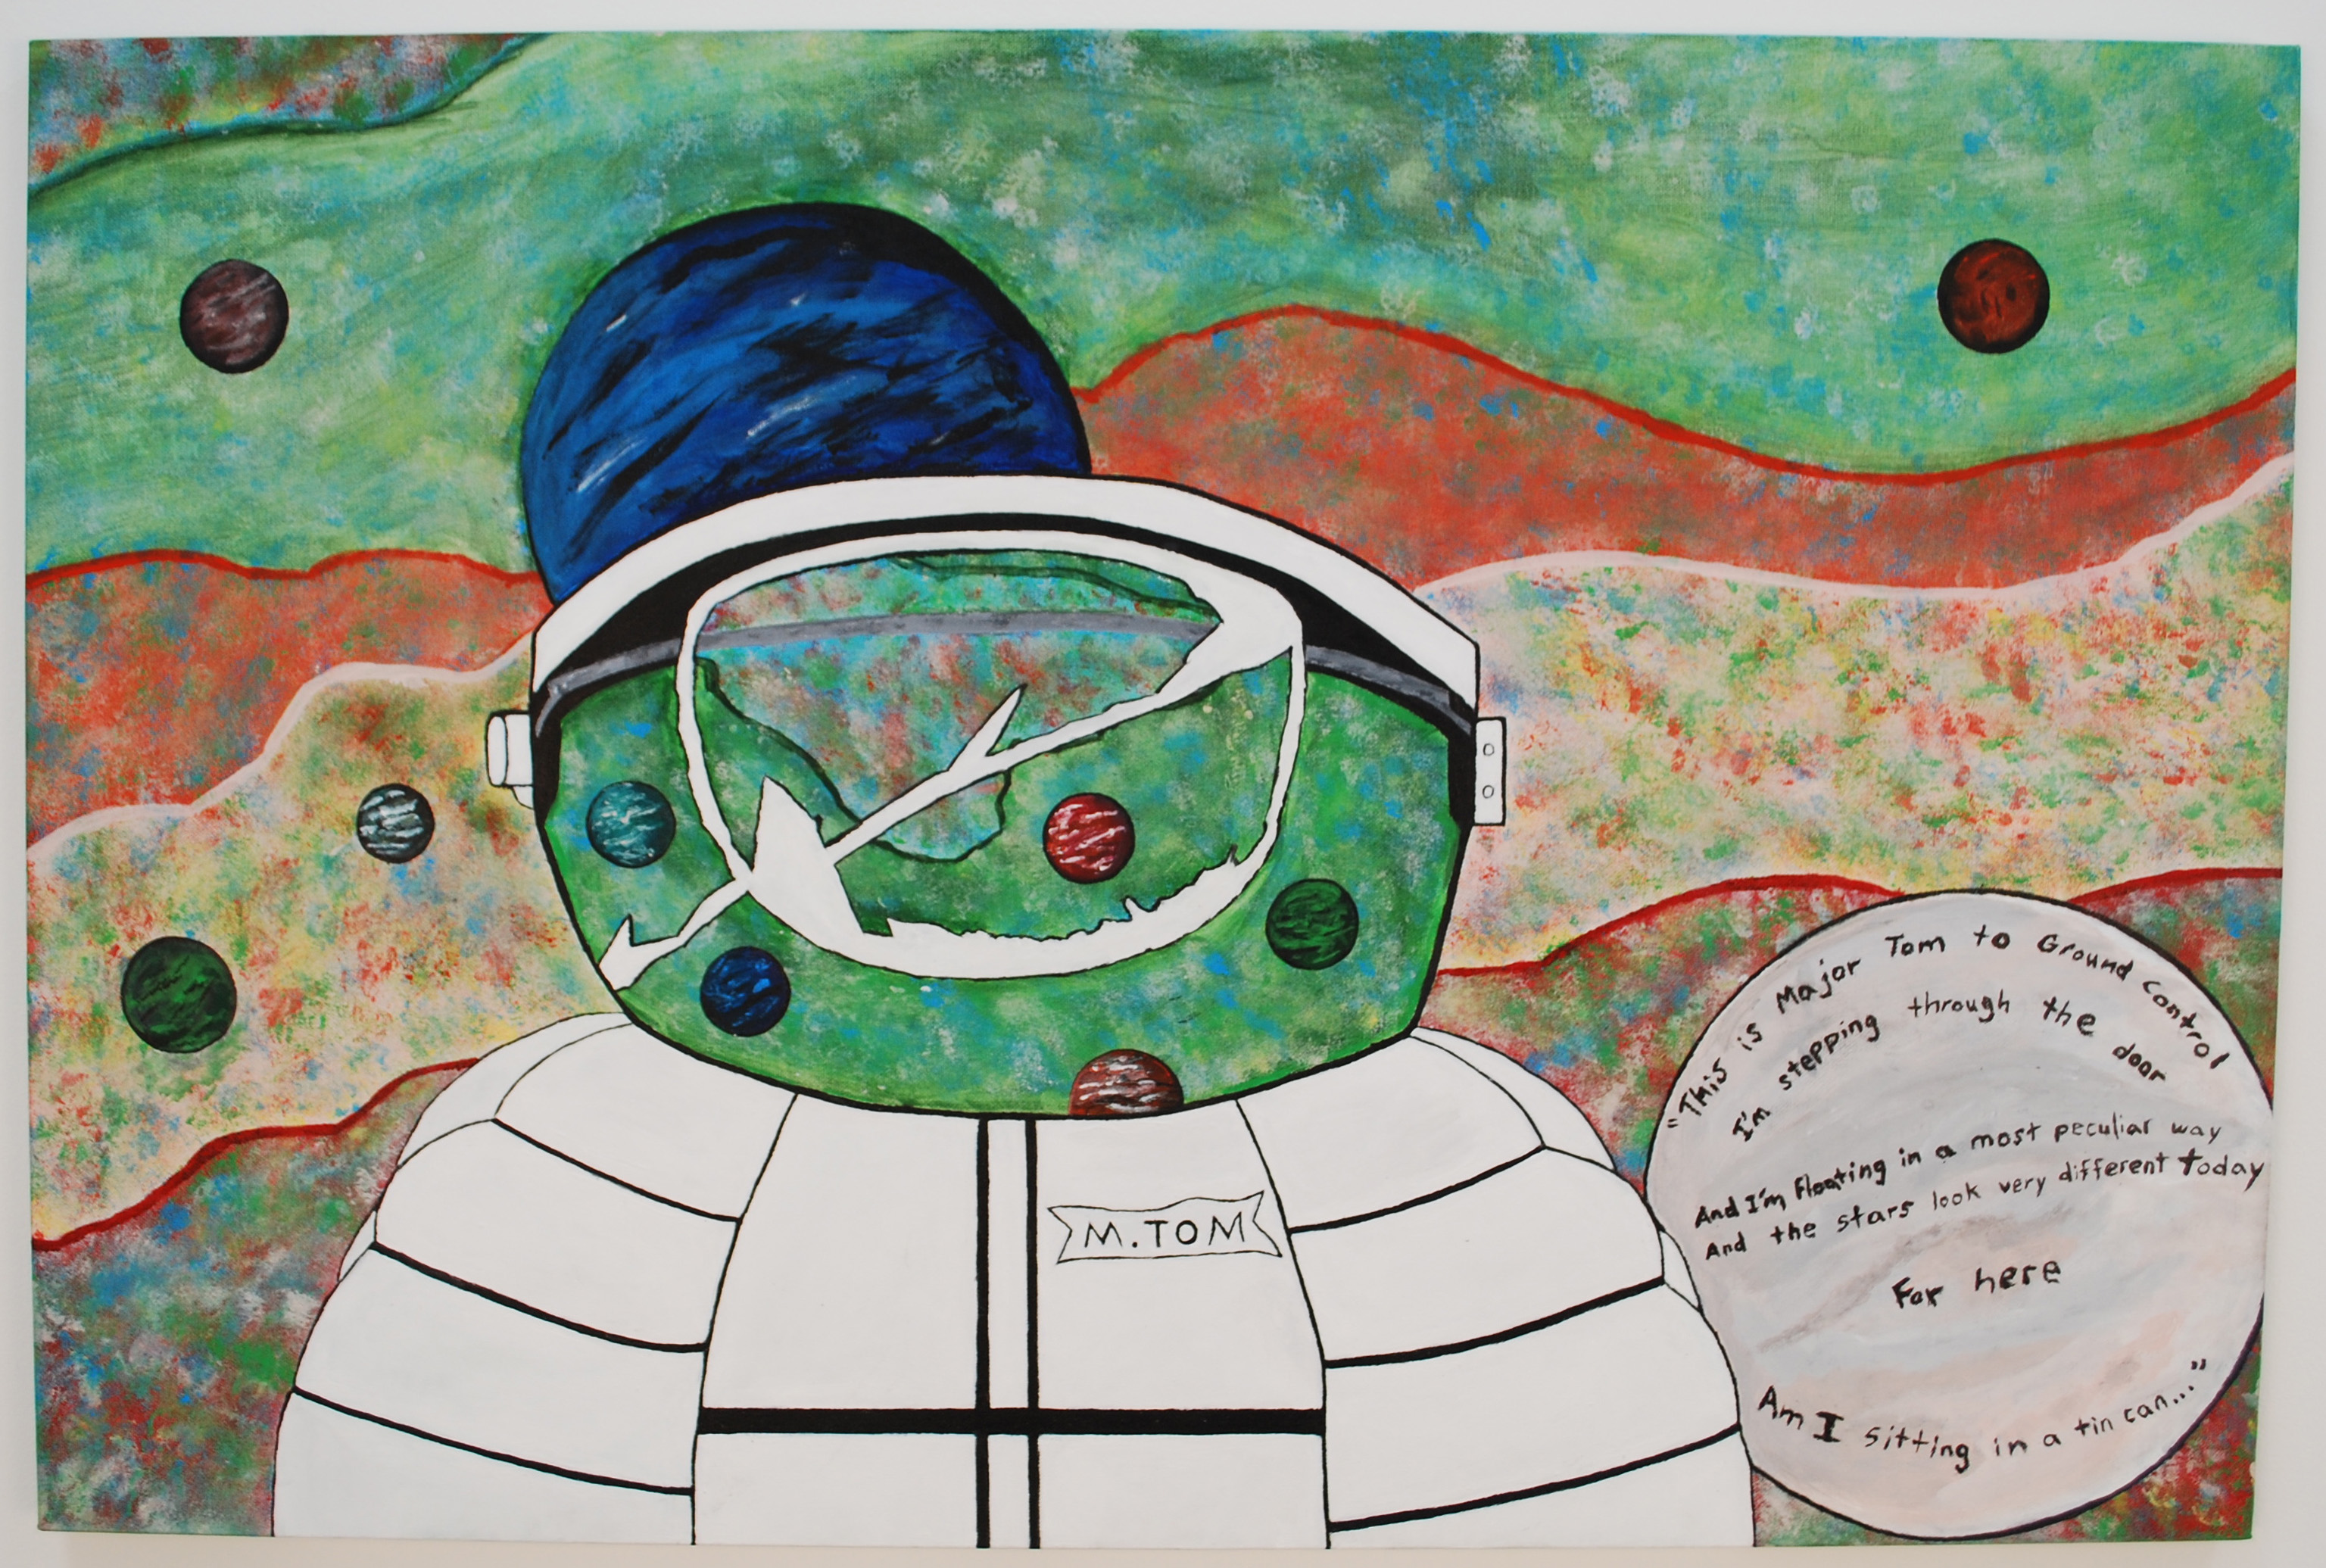 Space Oddity Major Tom artwork by Emilio Bravo - art listed for sale on Artplode